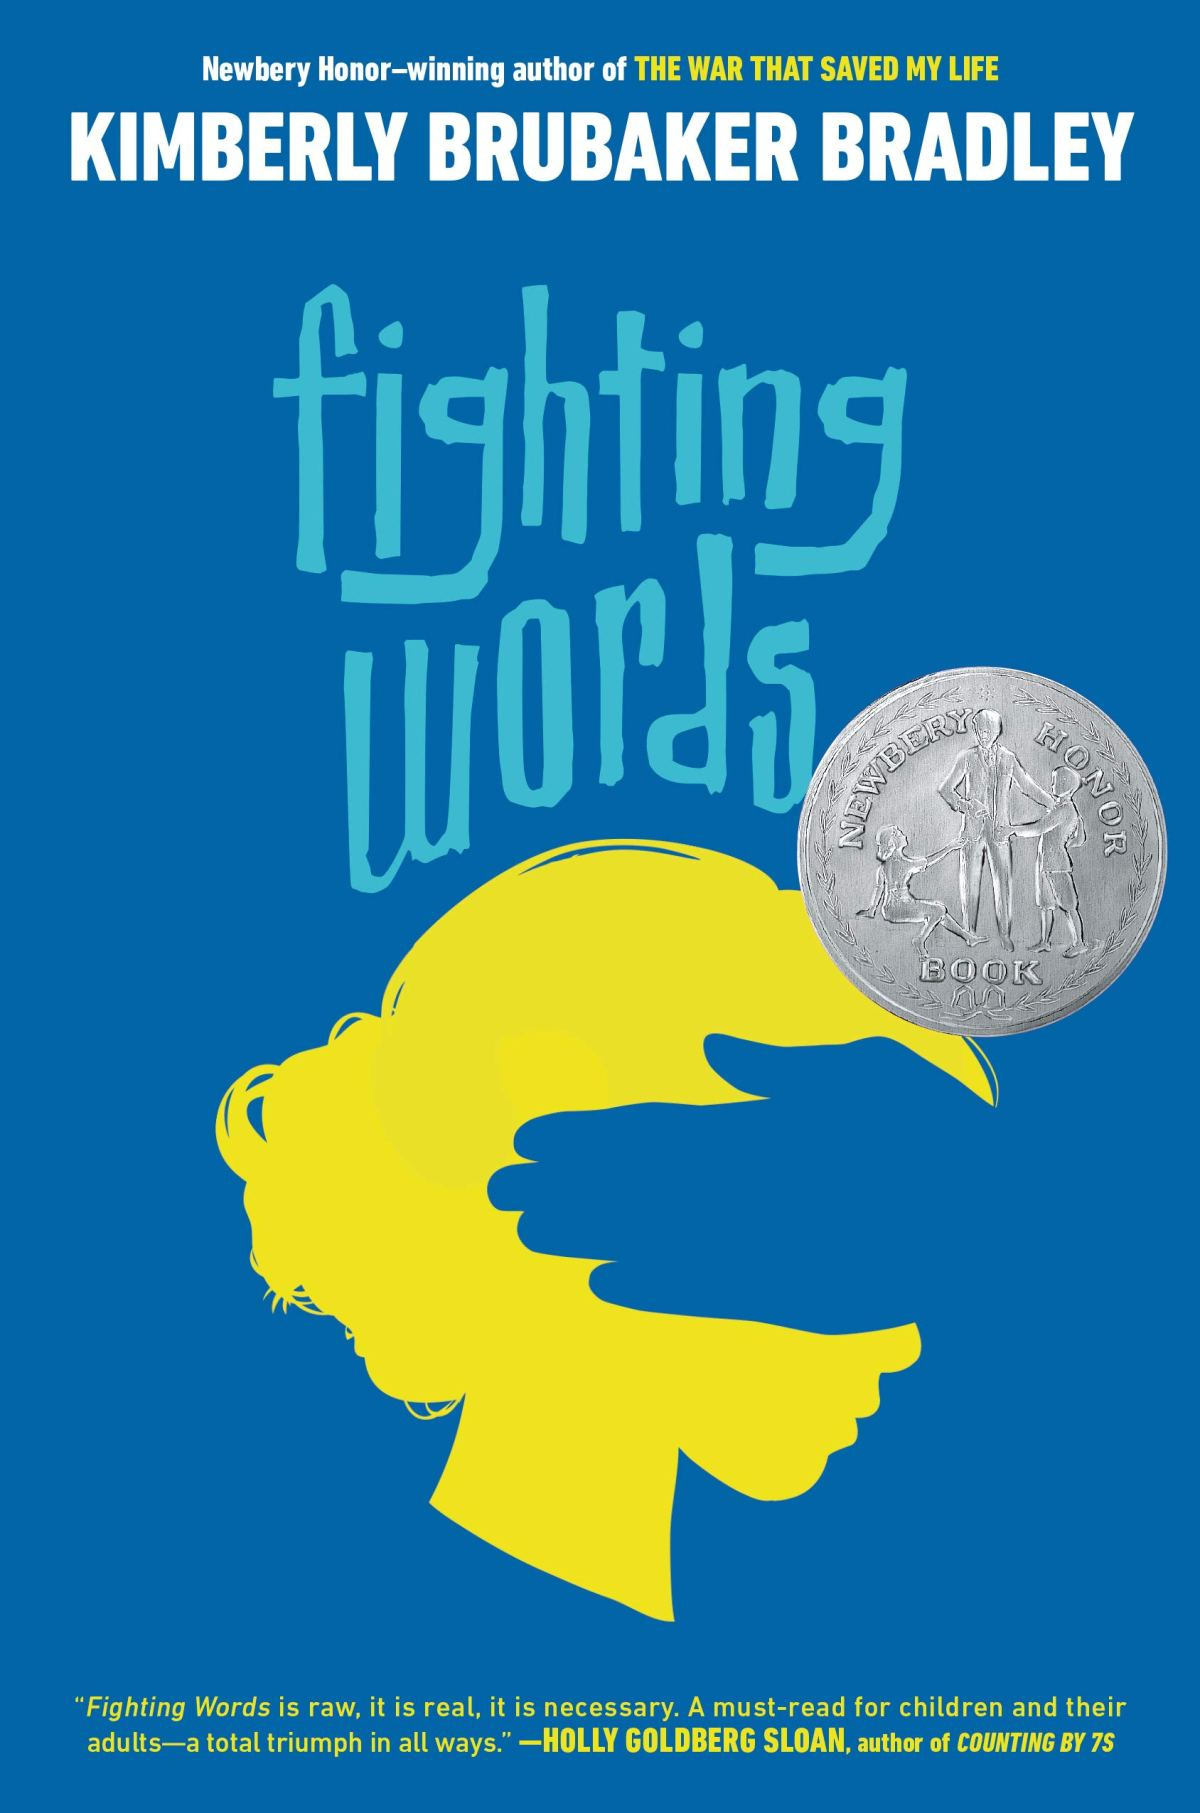 Book cover image for Fighting Words by Kimberly Brubaker Bradley